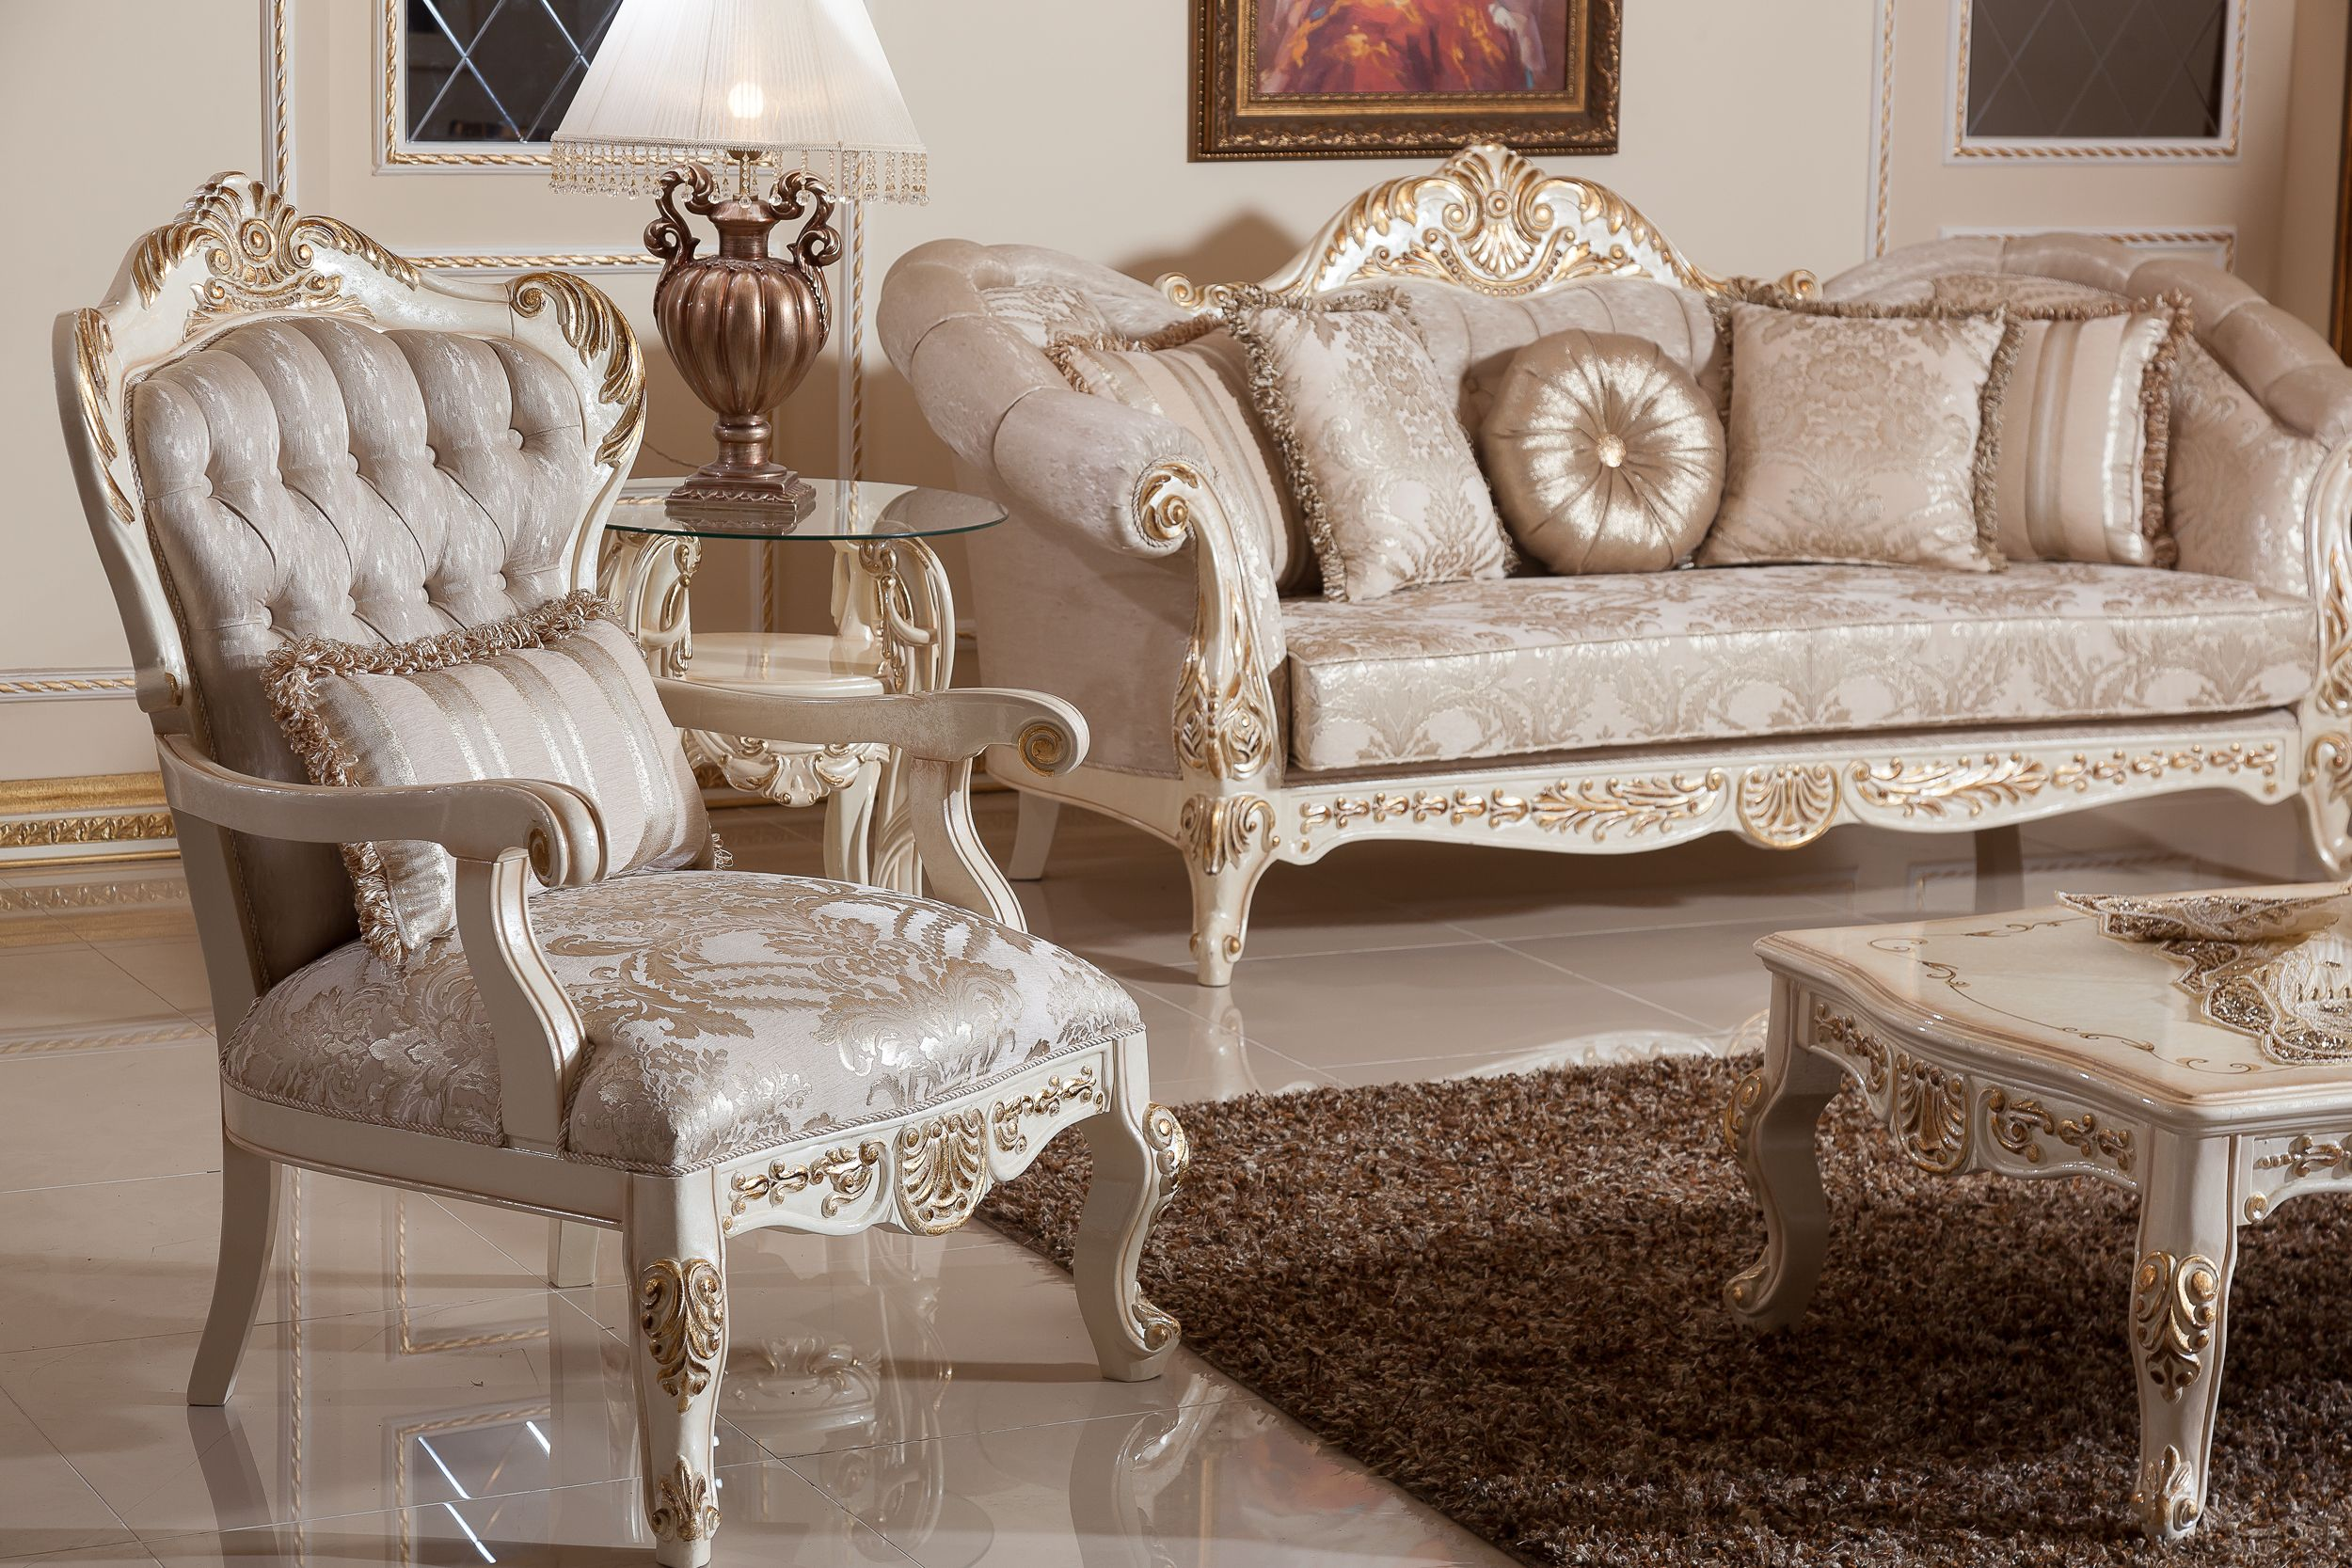 VIZYON SOFA SET Handmade Turkish Furniture. You Can Give Order This Sofa  Set (3+3+1+1+ Coffee Table). Total Price Is 6500 Dollar. We Can Shipping  Worldwide.